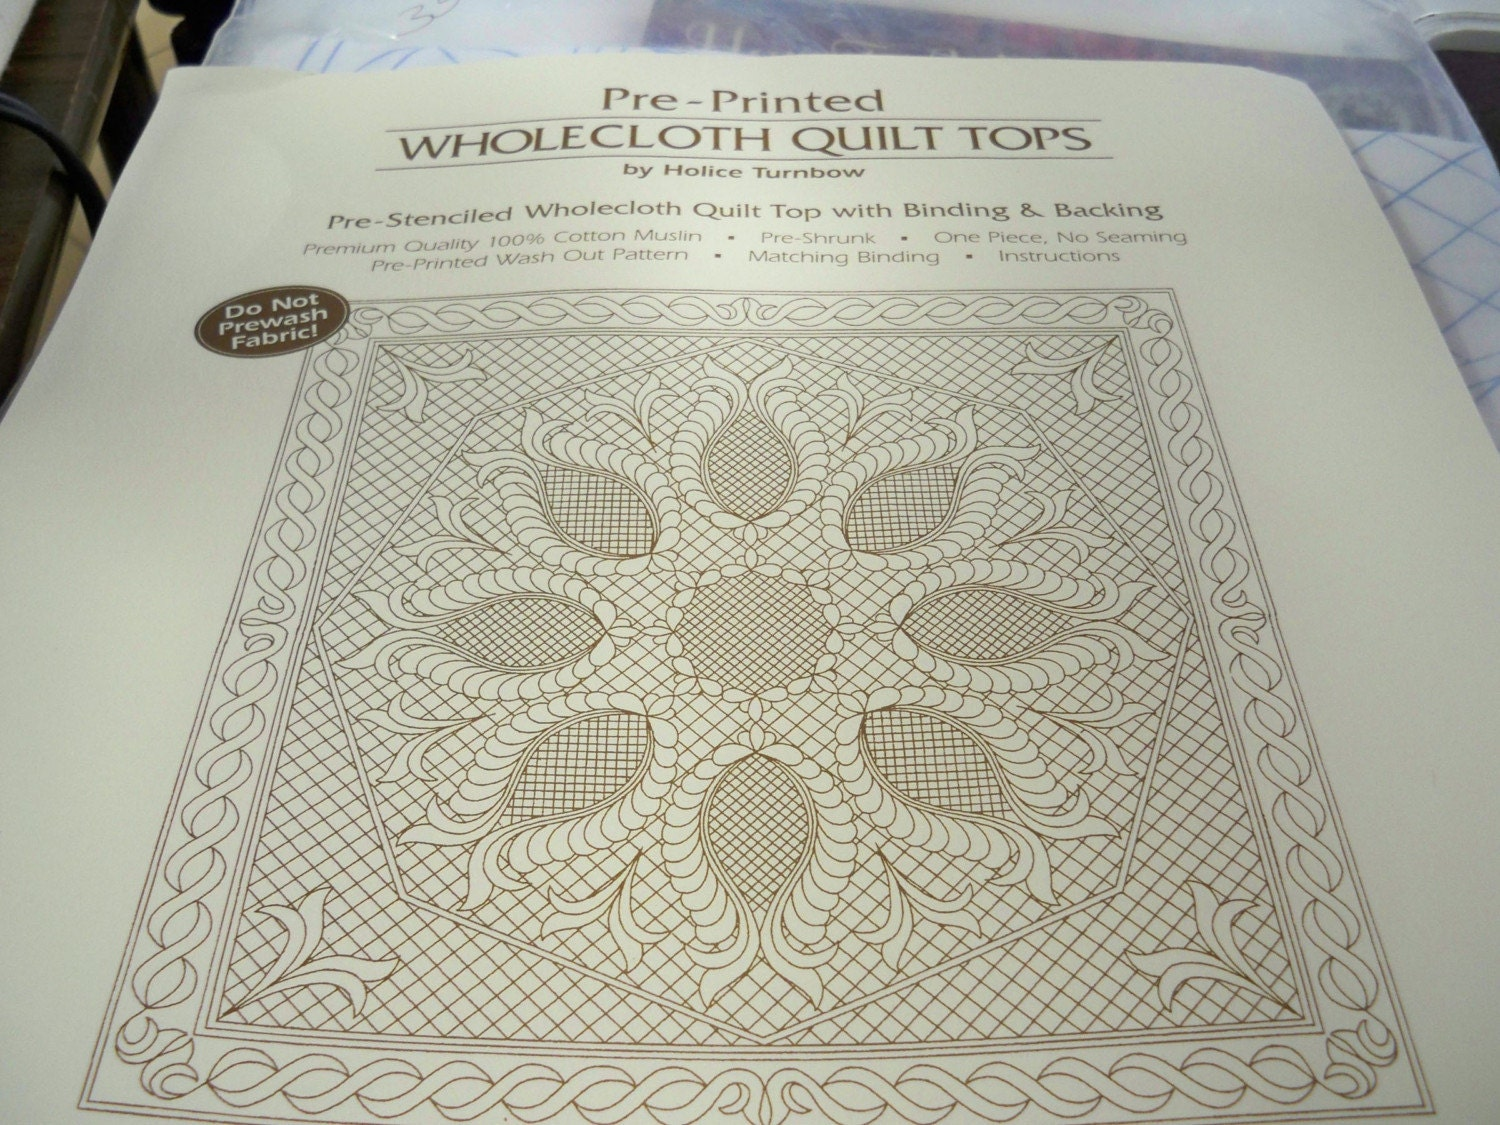 Pre Printed Wholecloth Quilt Top Wallhanging 40 X 40 Feathered